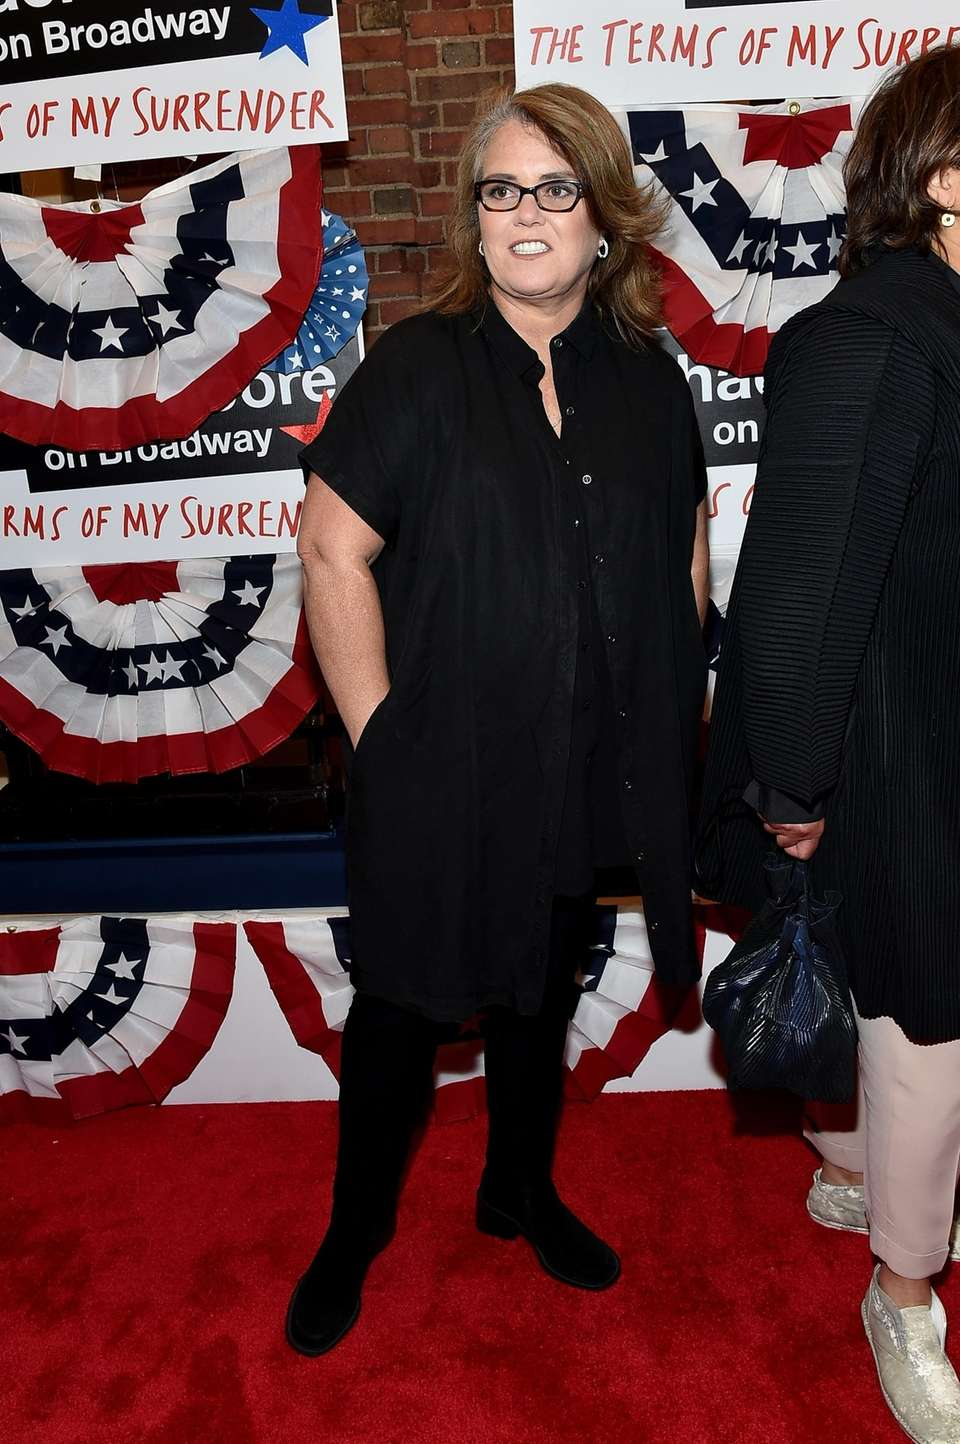 Rosie O'Donnell attends the opening night performance of